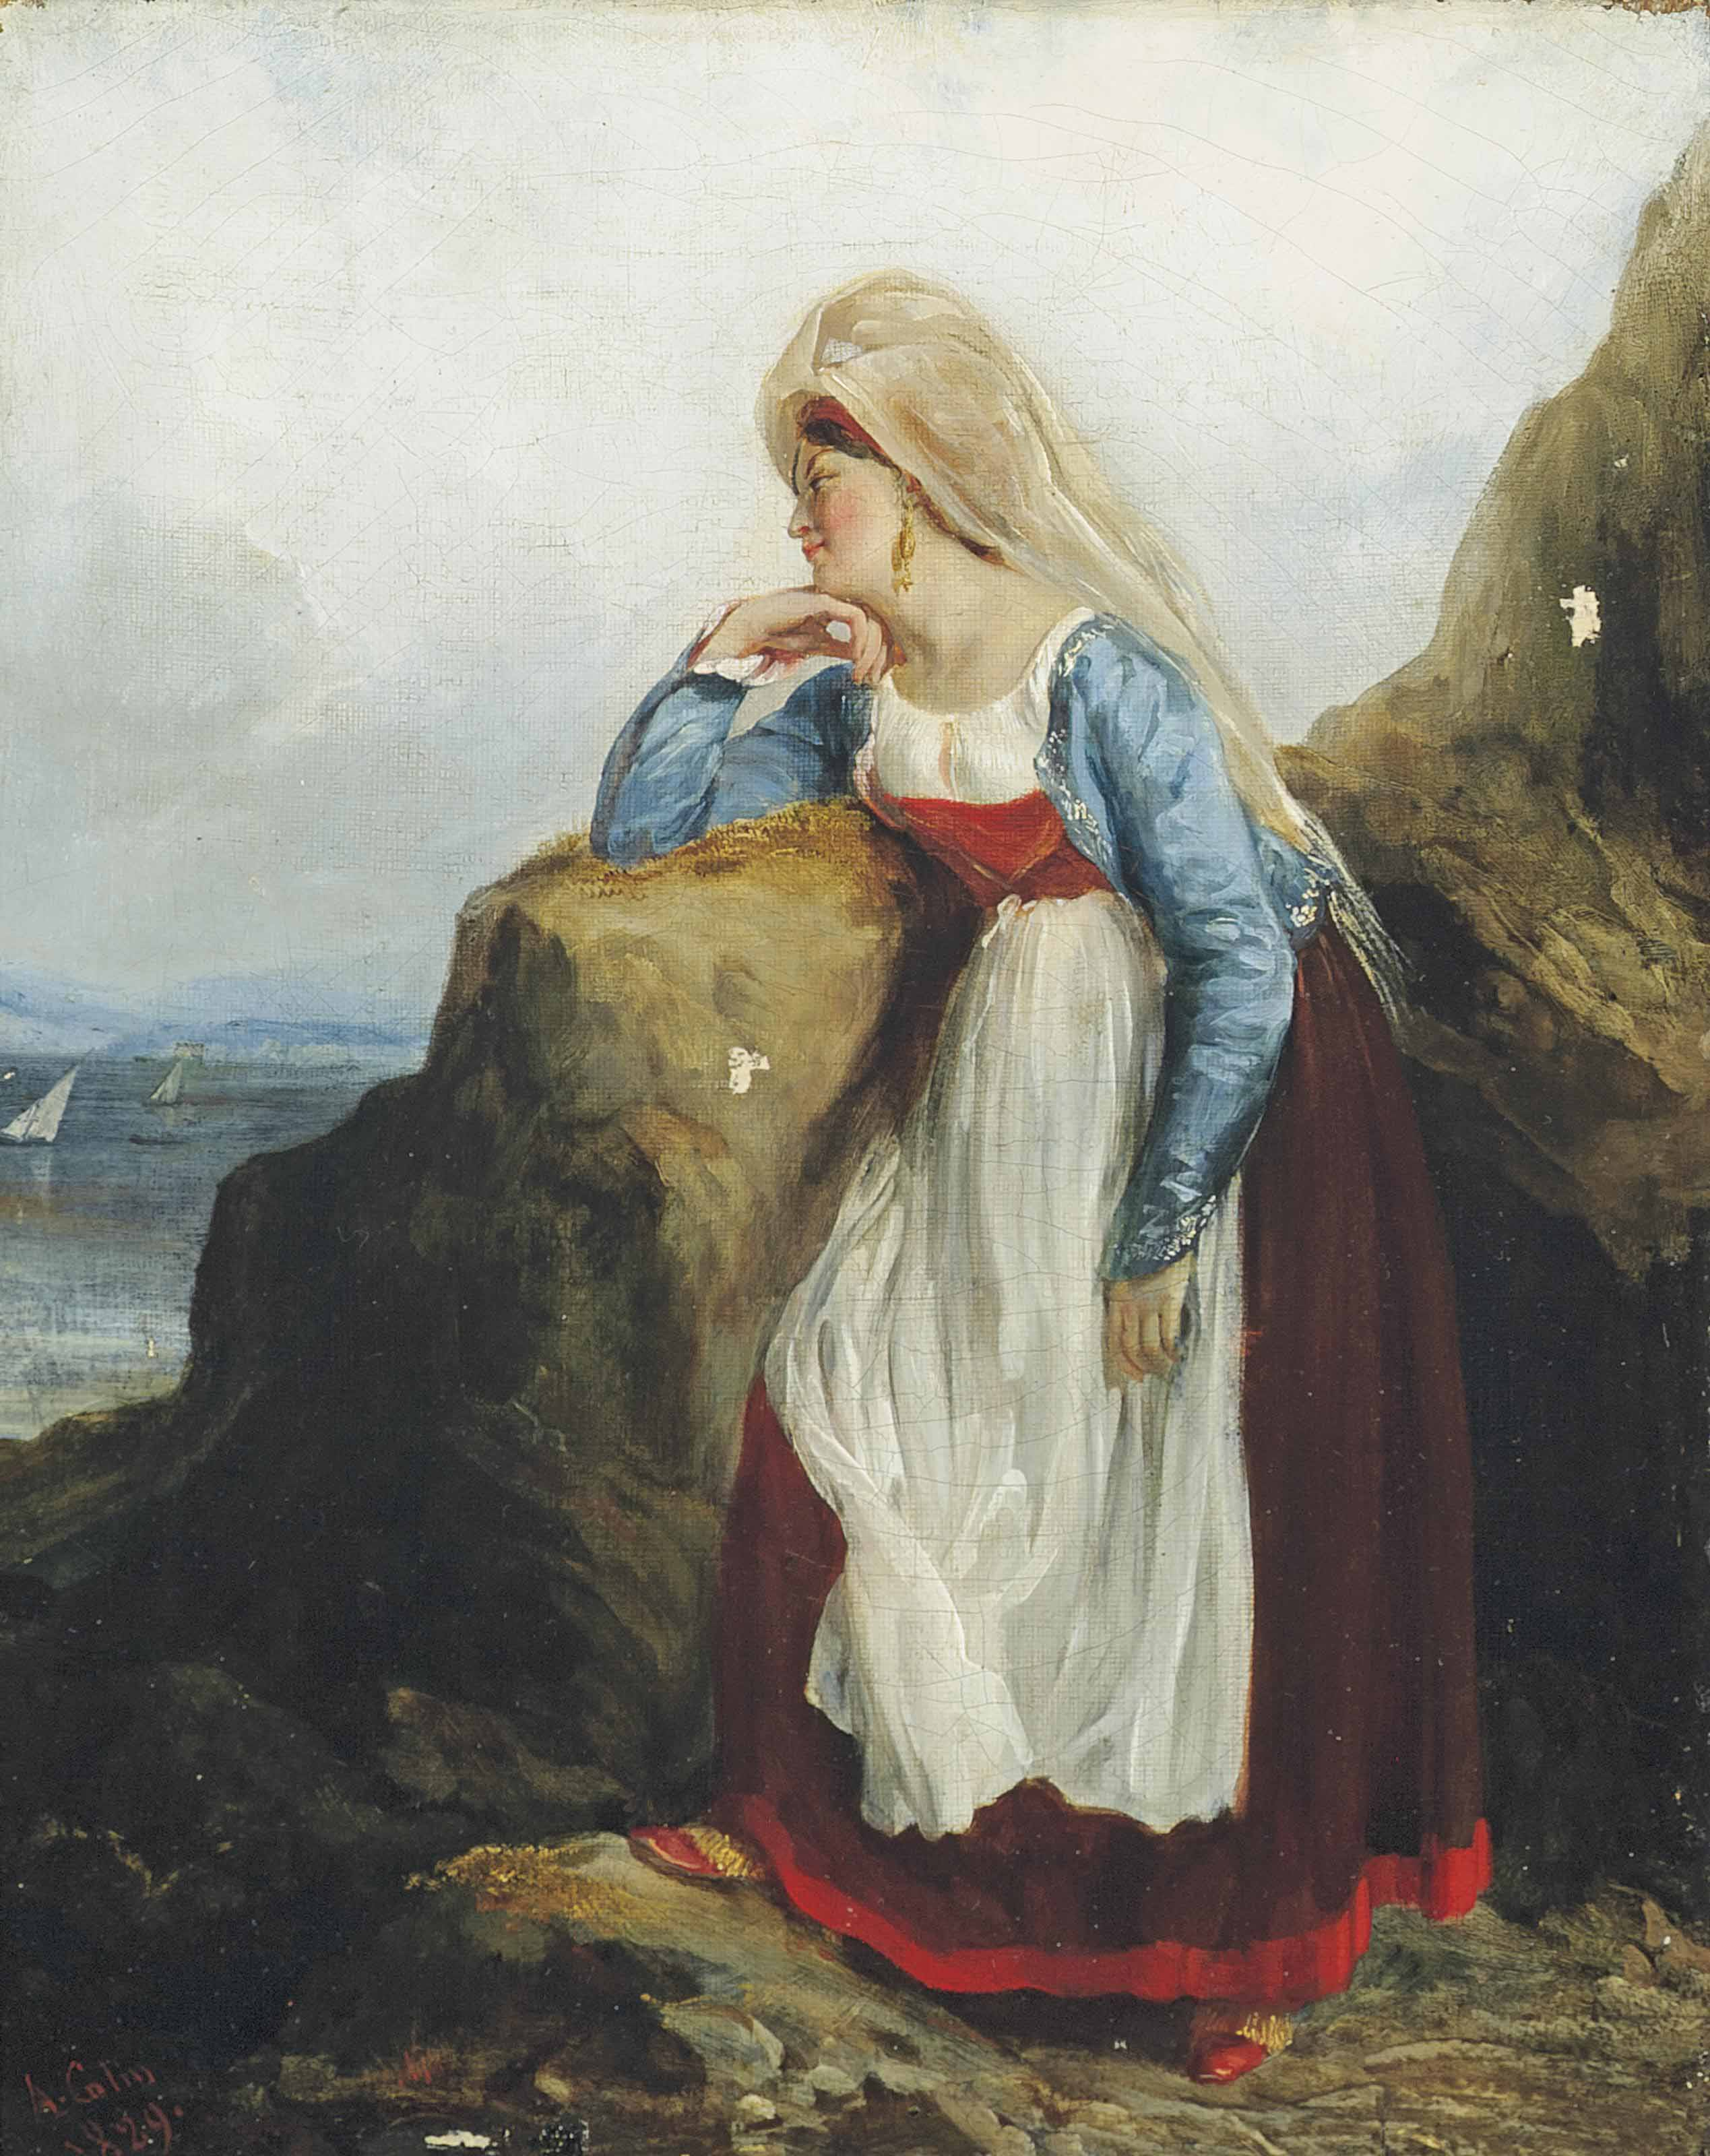 A maiden waiting by the shore